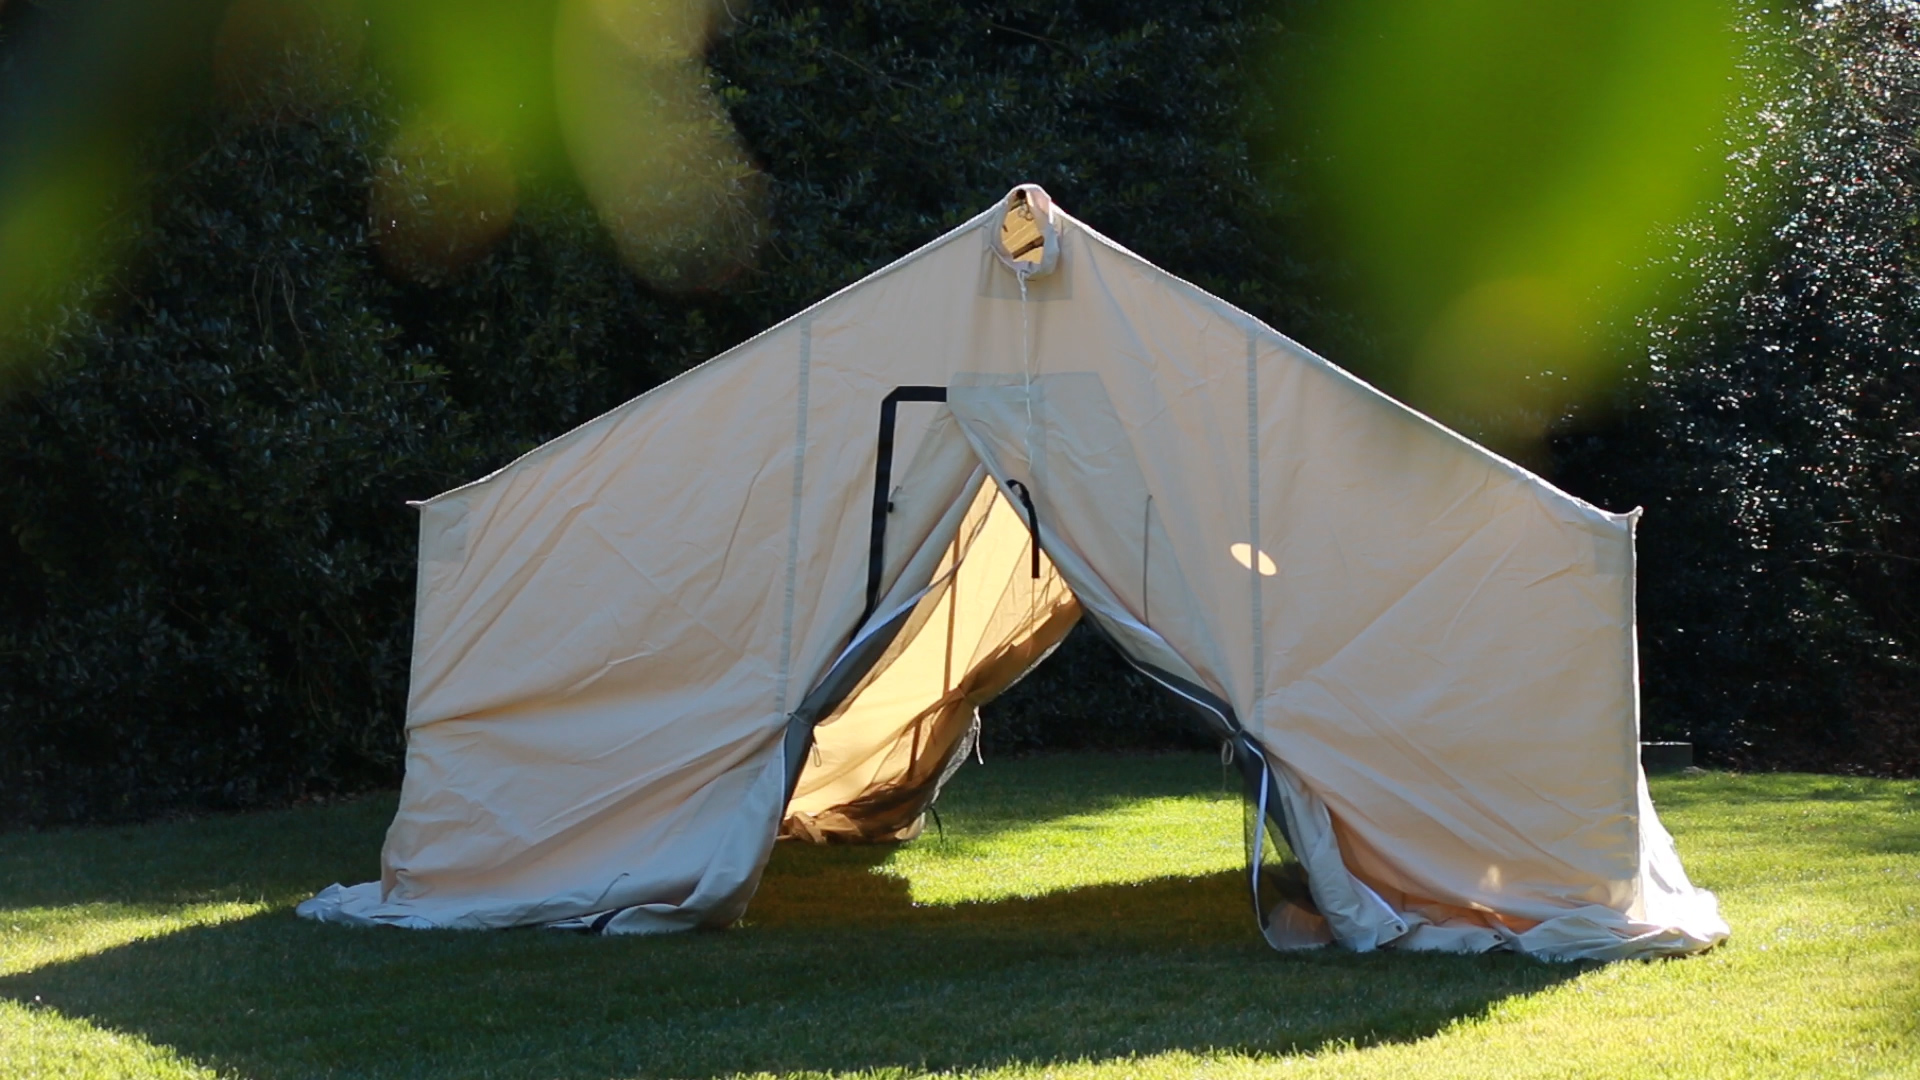 $4000 A Freeman Tent An Outfitter Stove Package and Me! & Freeman Tents | Indiegogo